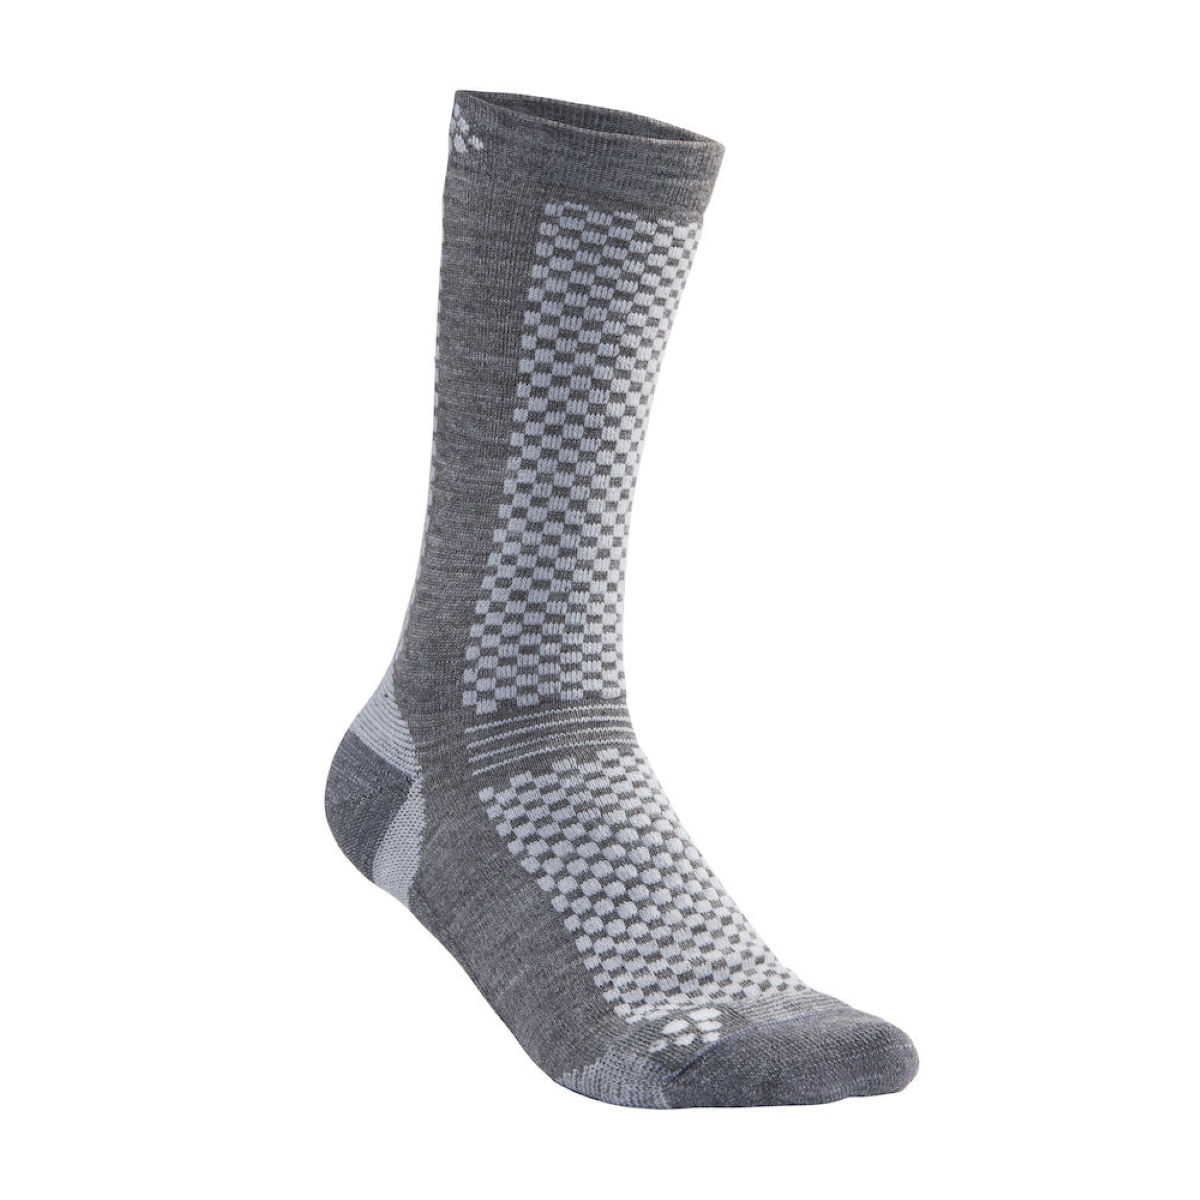 Image of Chaussettes Craft Warm Mid (2 paires) - S Granite/Plat | Chaussettes